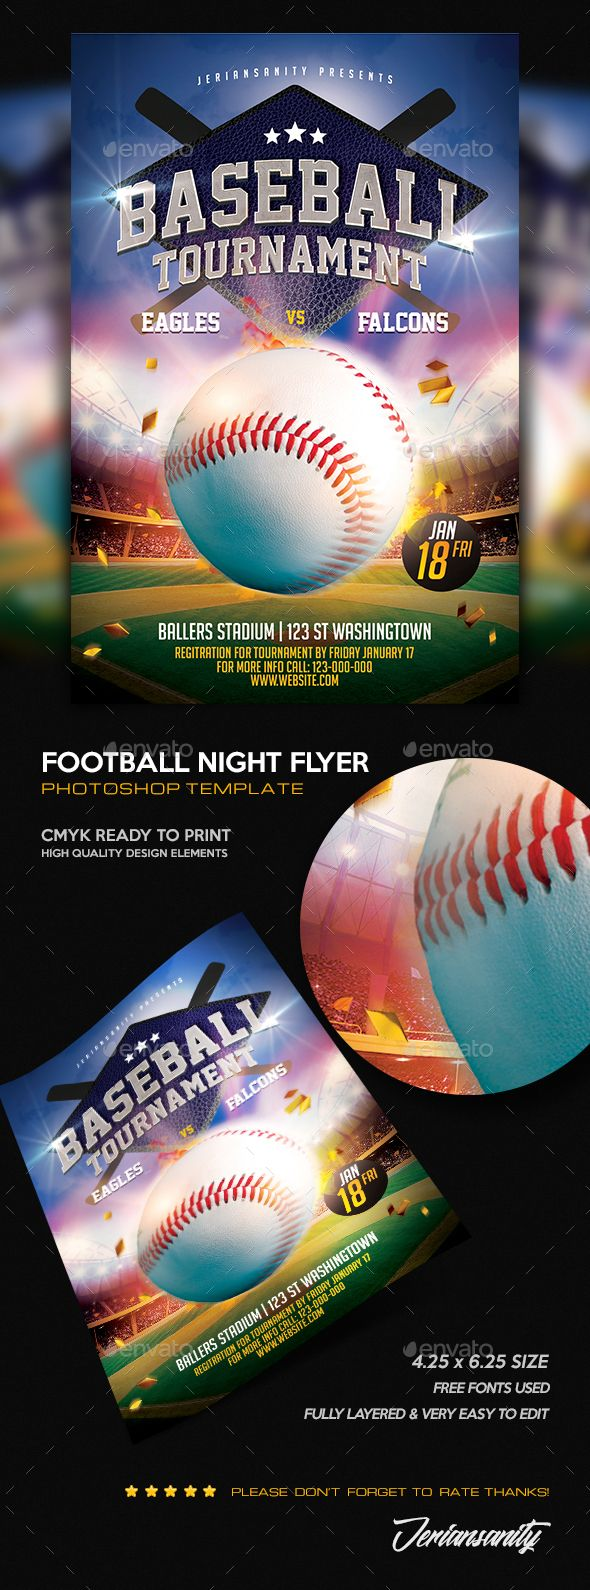 Baseball Flyer | Psd templates, Template and Fonts